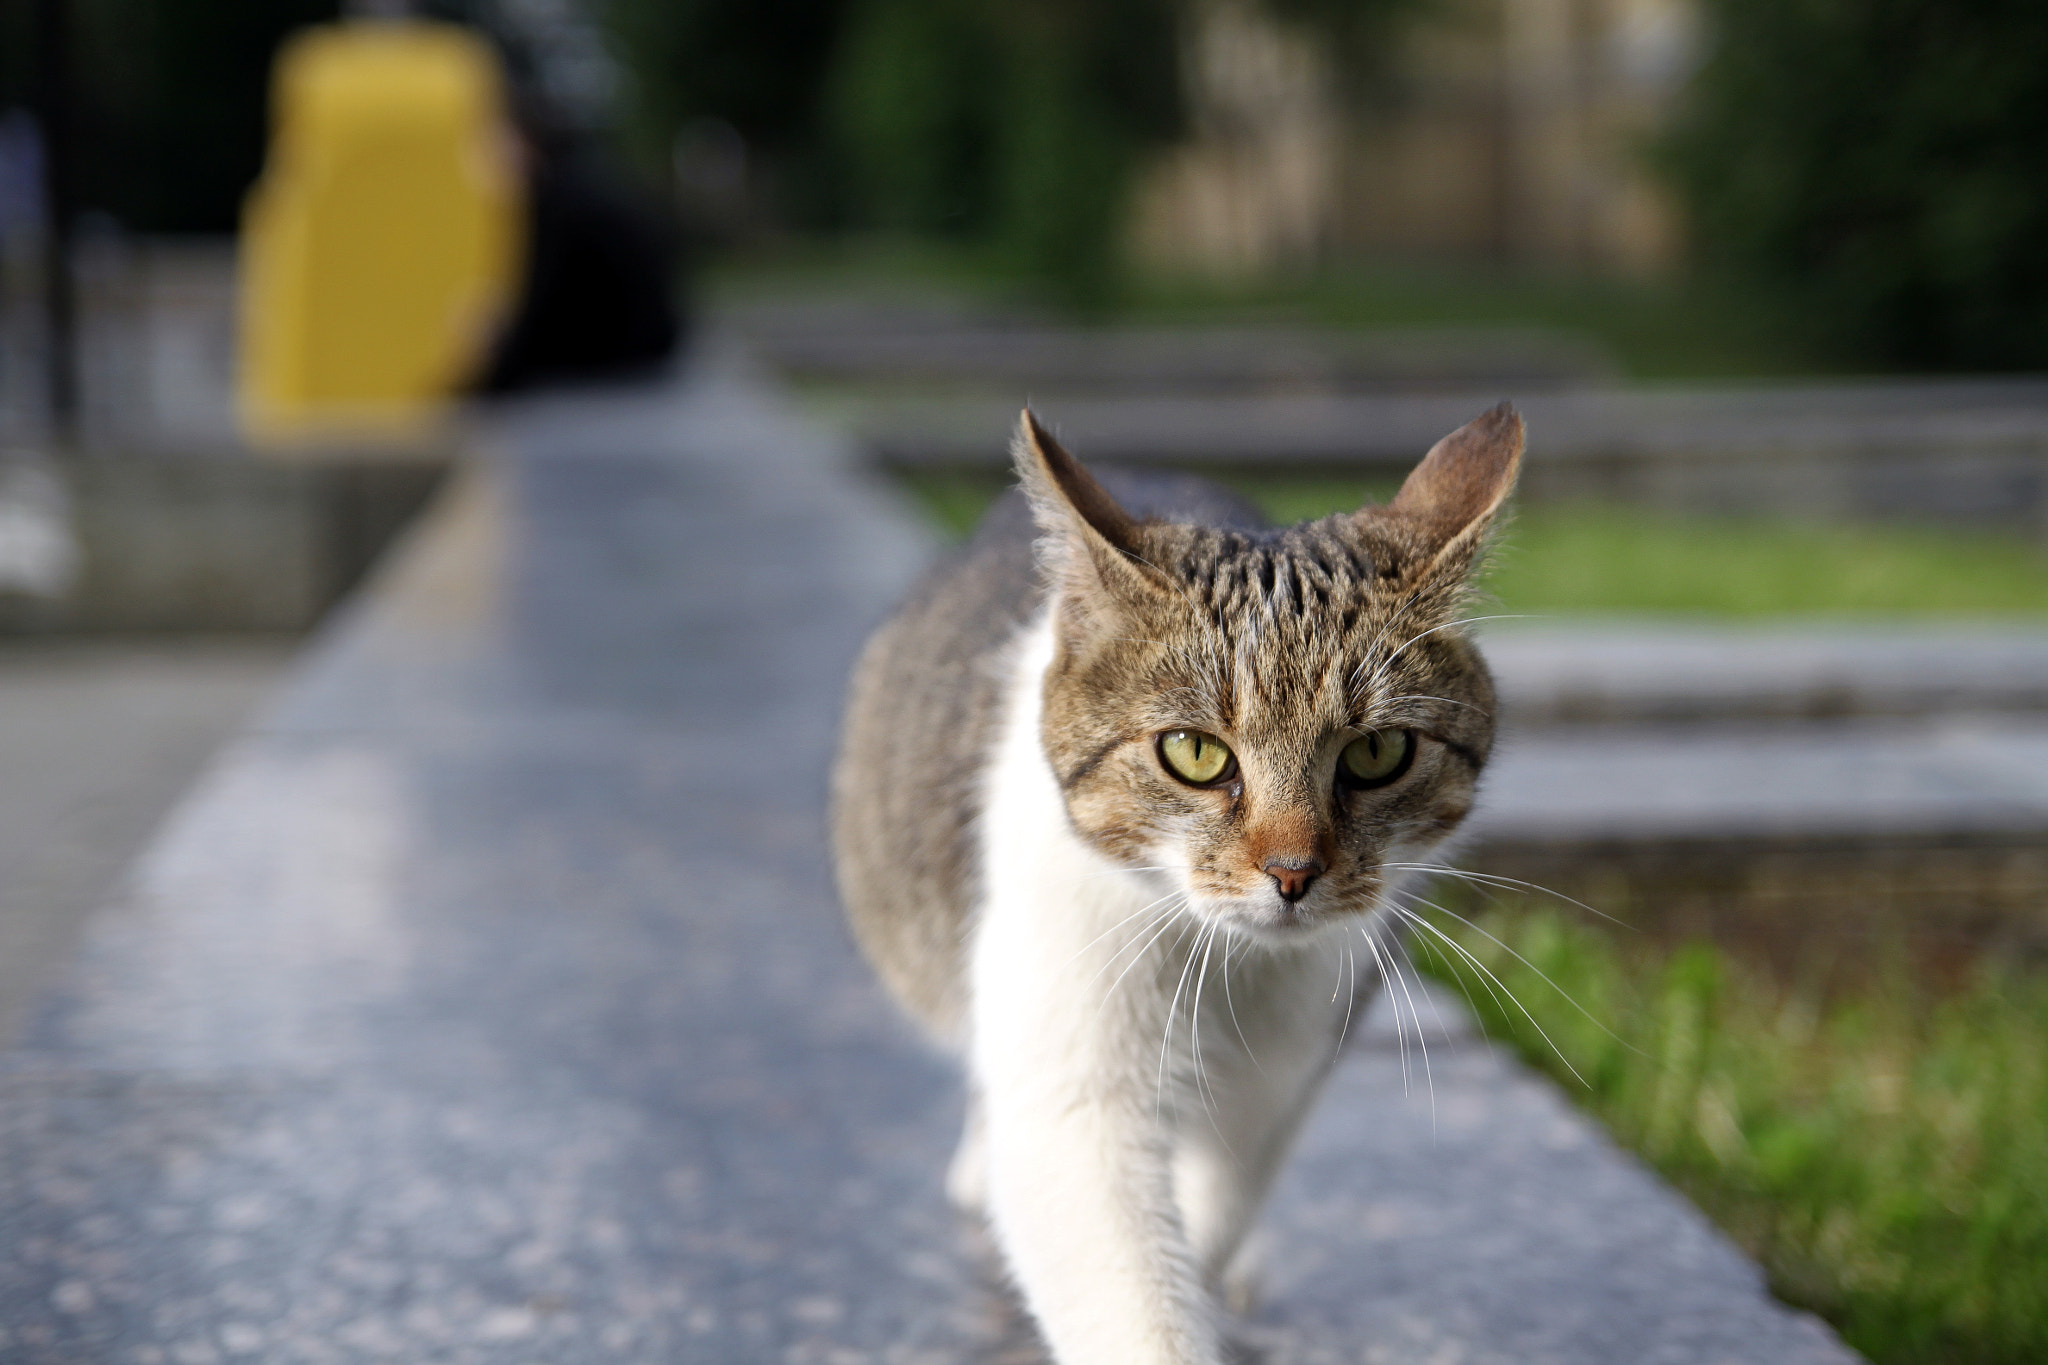 Photograph Walking Cat by Oleh Horen on 500px